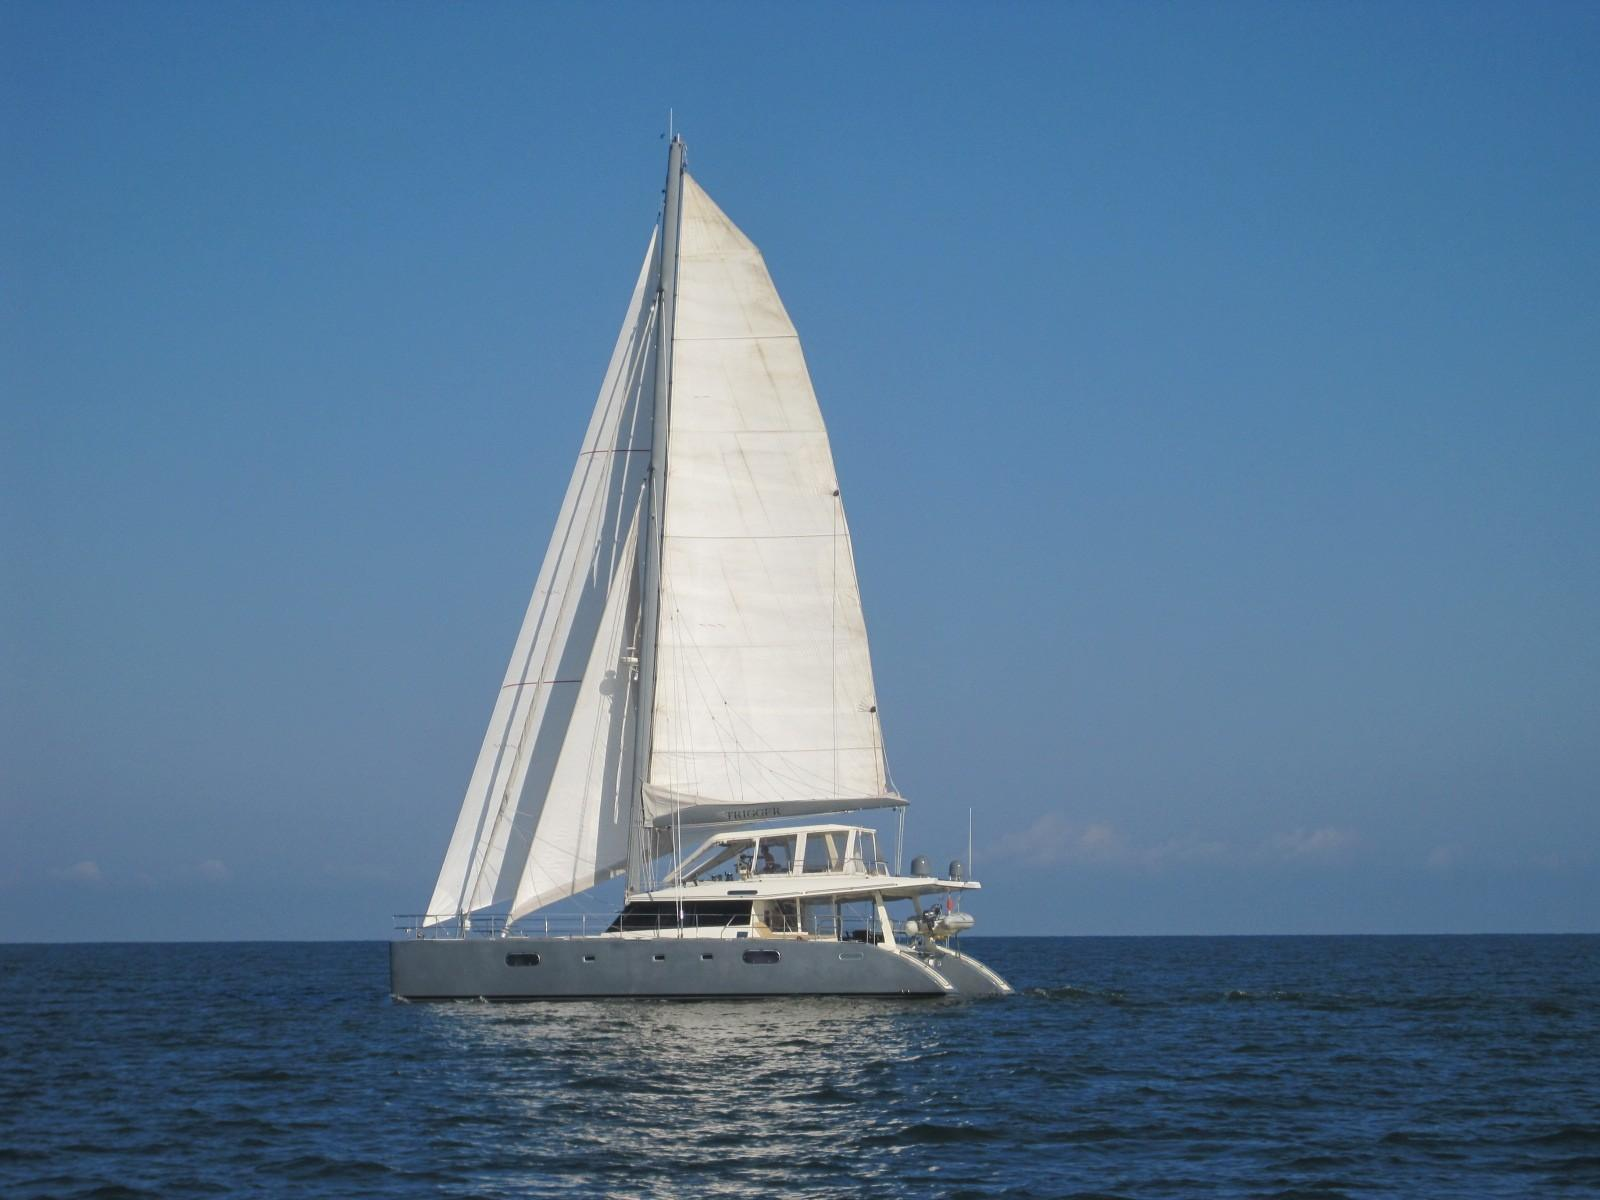 62' Sunreef 2006